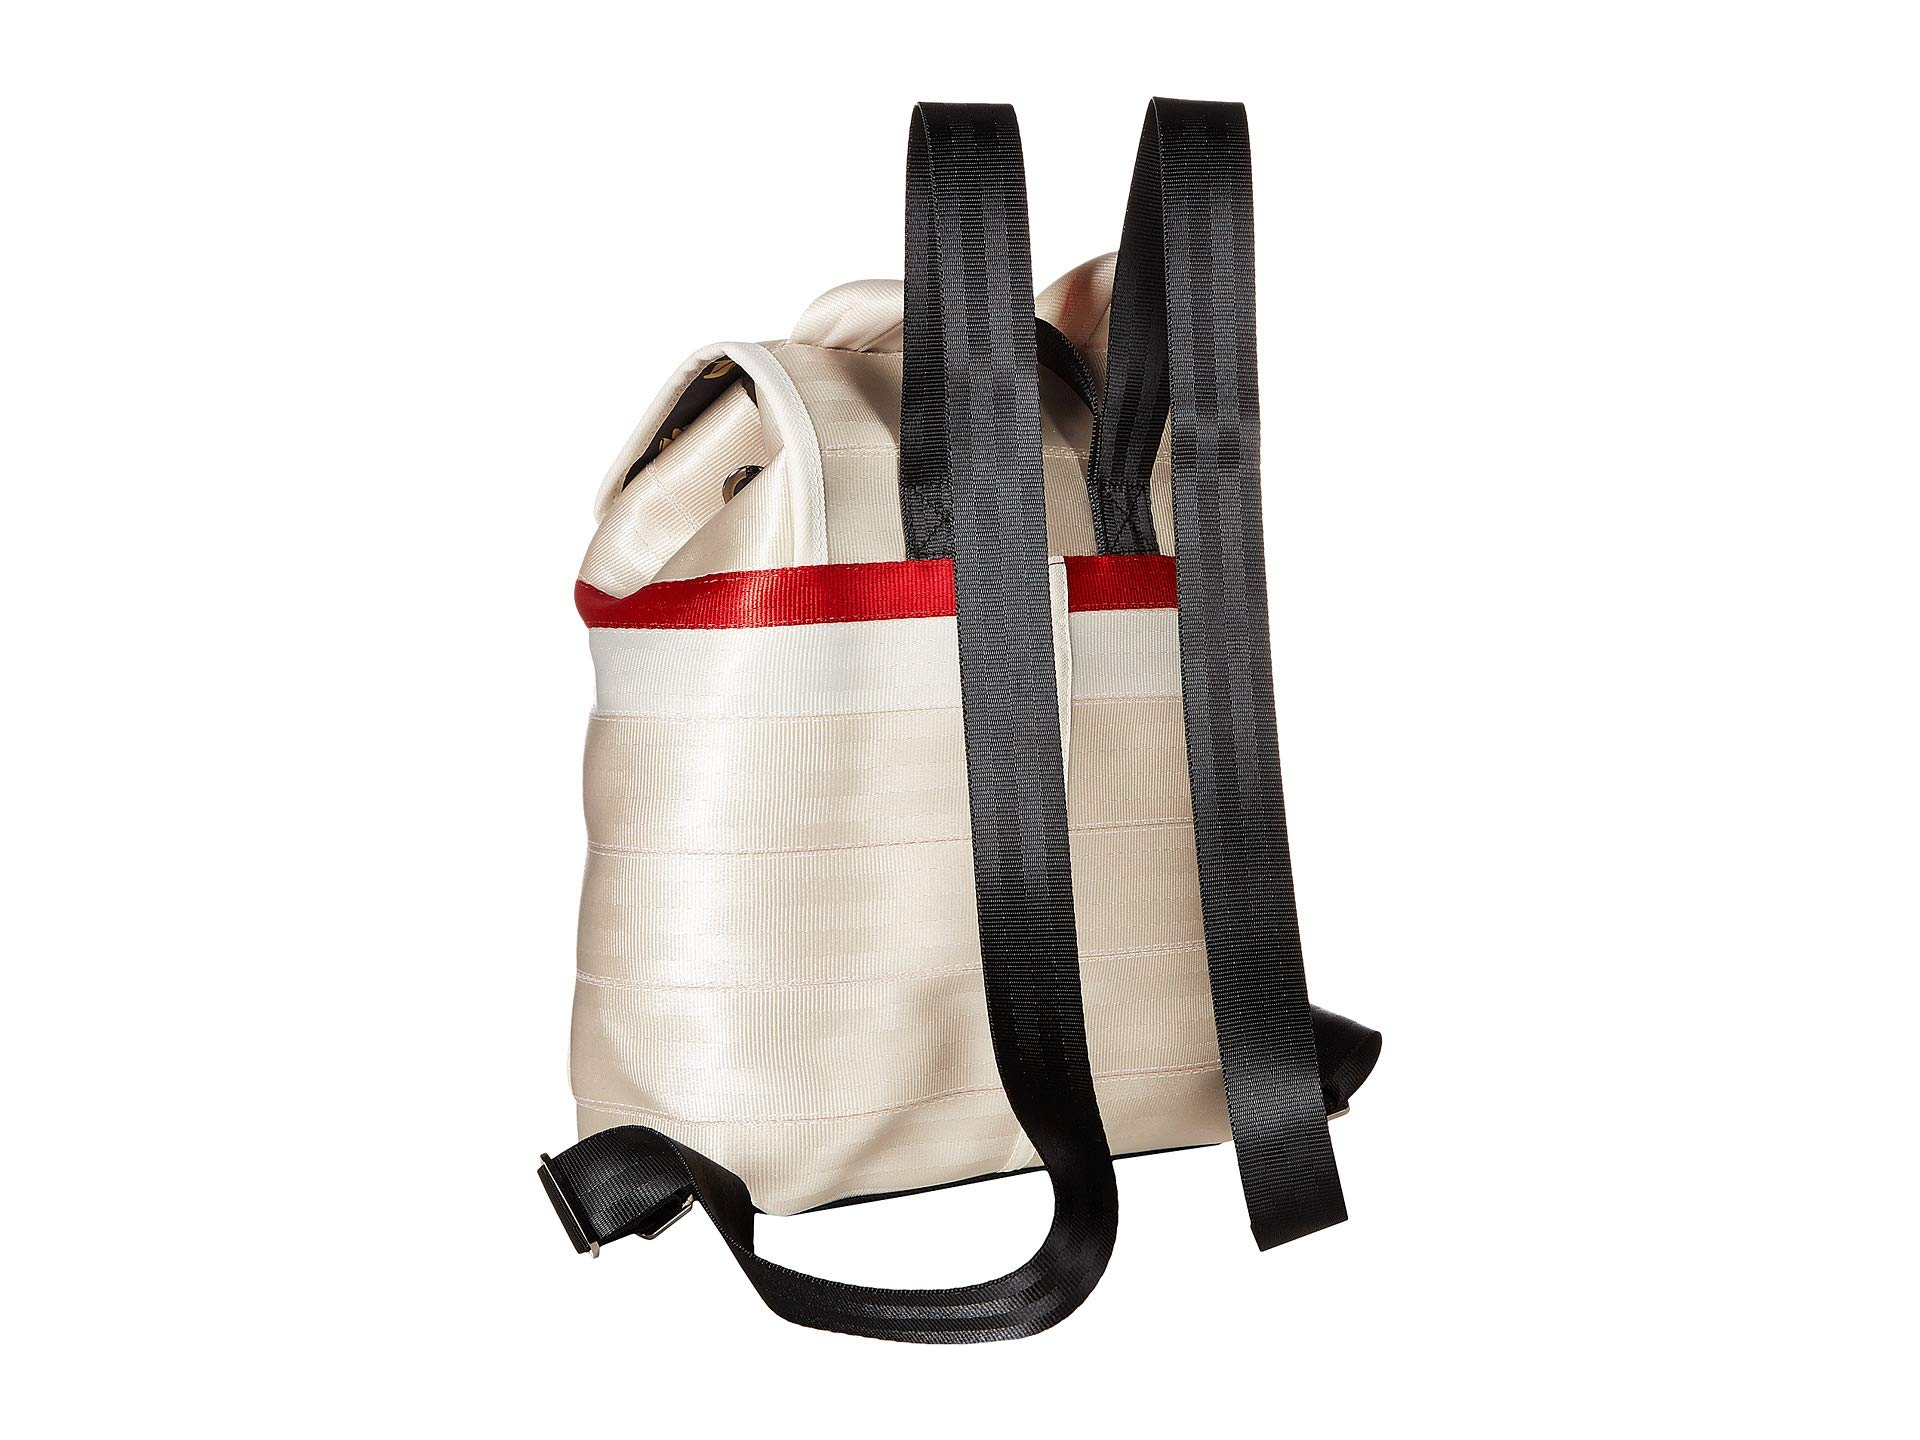 Series Seatbelt Fortune Bag black Cream Harveys Good Backpack Collector's YwUxRFq